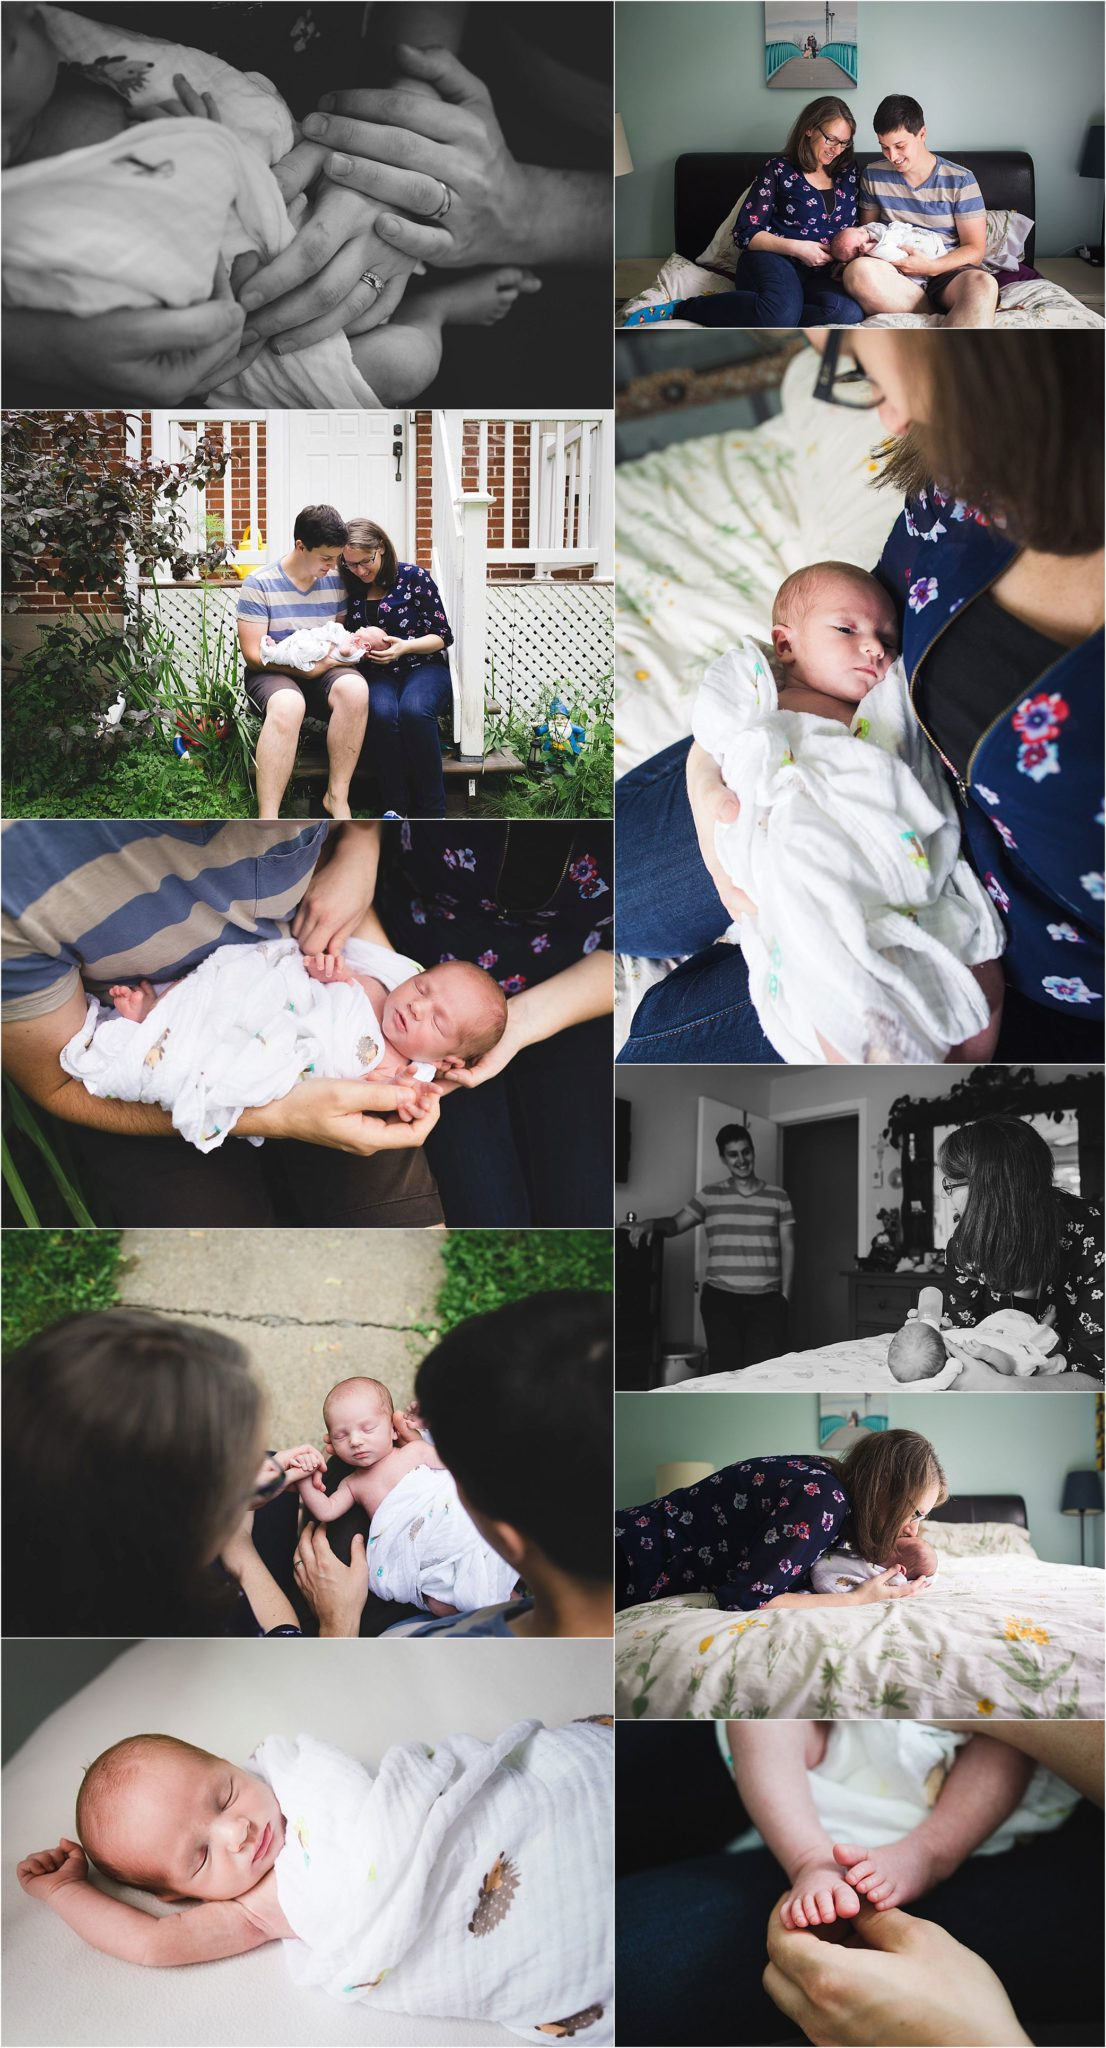 Newborn Photography Session with Michelle Little Photography in Montreal, Quebec, Canada